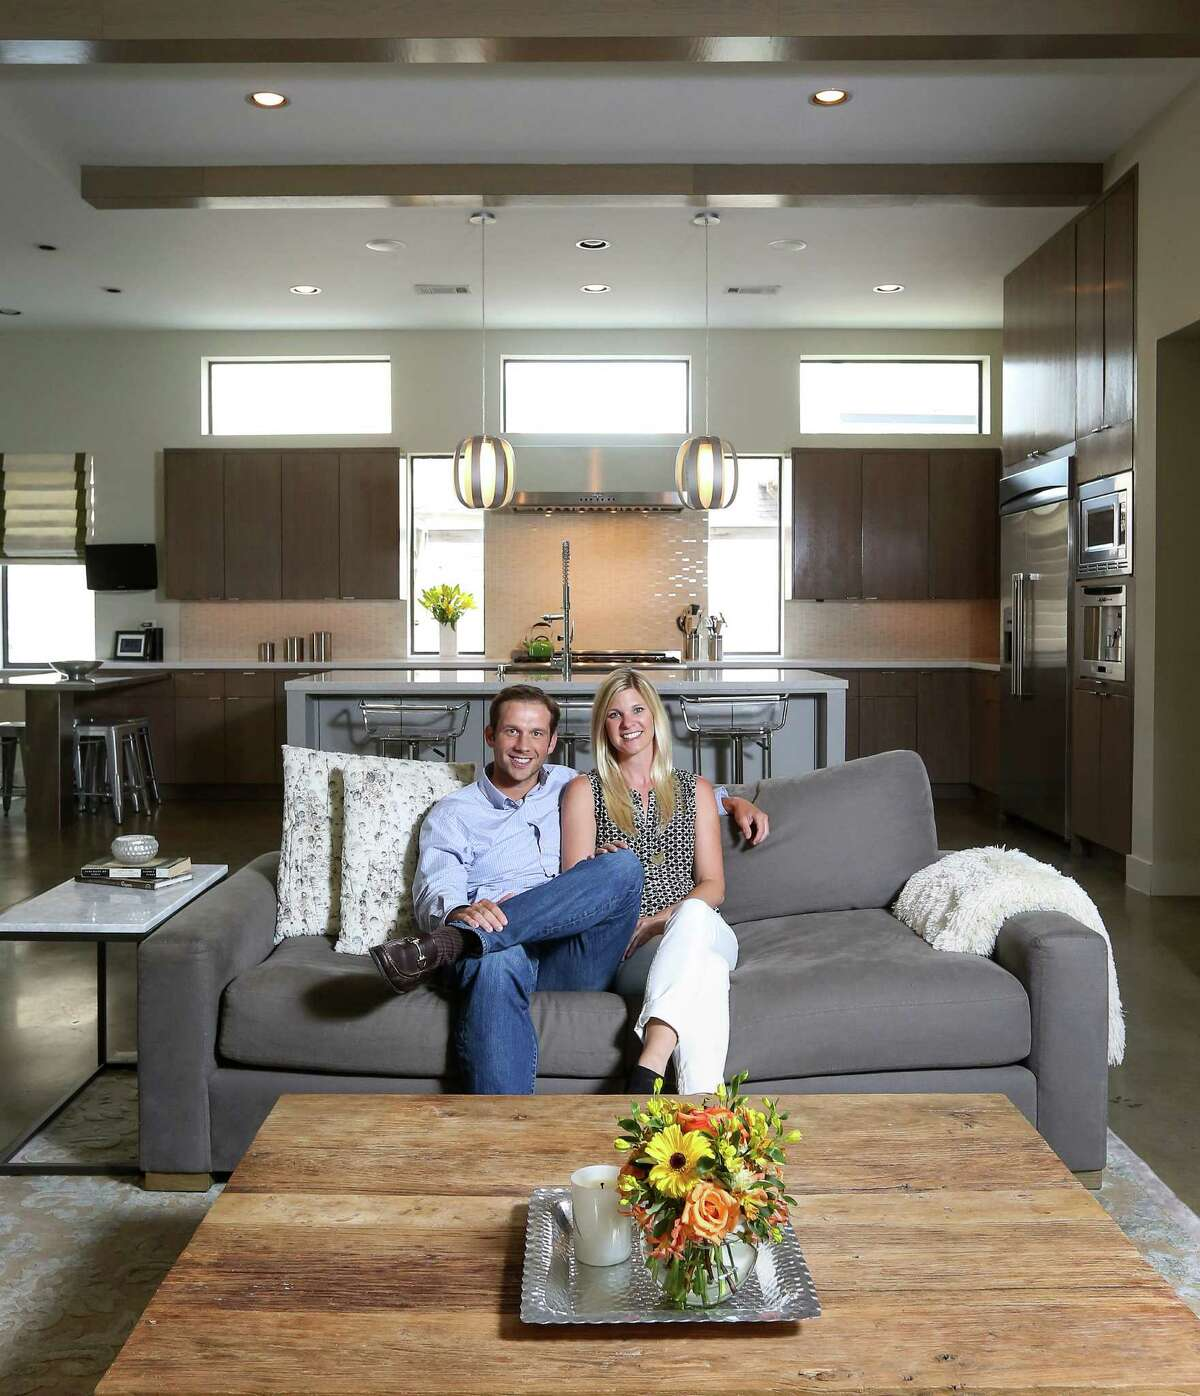 John Leggett is CEO of On Point Custom Homes. His wife, Leah, is a Realtor who stages and lists the company's spec homes.